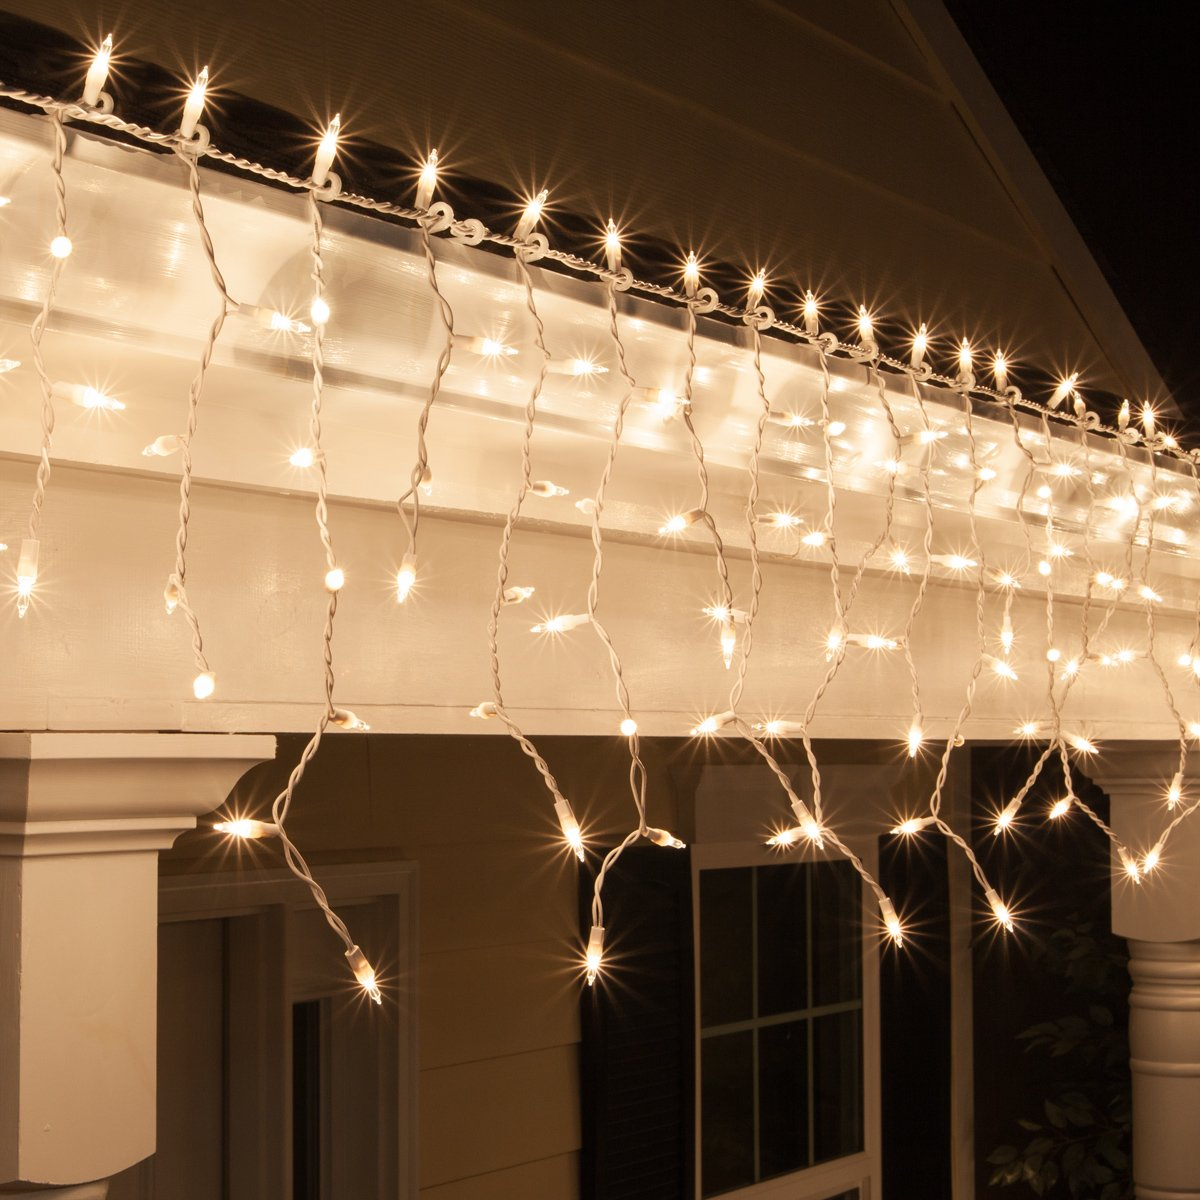 Amazon 9 ft 150 clear icicle lights white wire indoor amazon 9 ft 150 clear icicle lights white wire indoor outdoor christmas lights outdoor holiday icicle lights home kitchen aloadofball